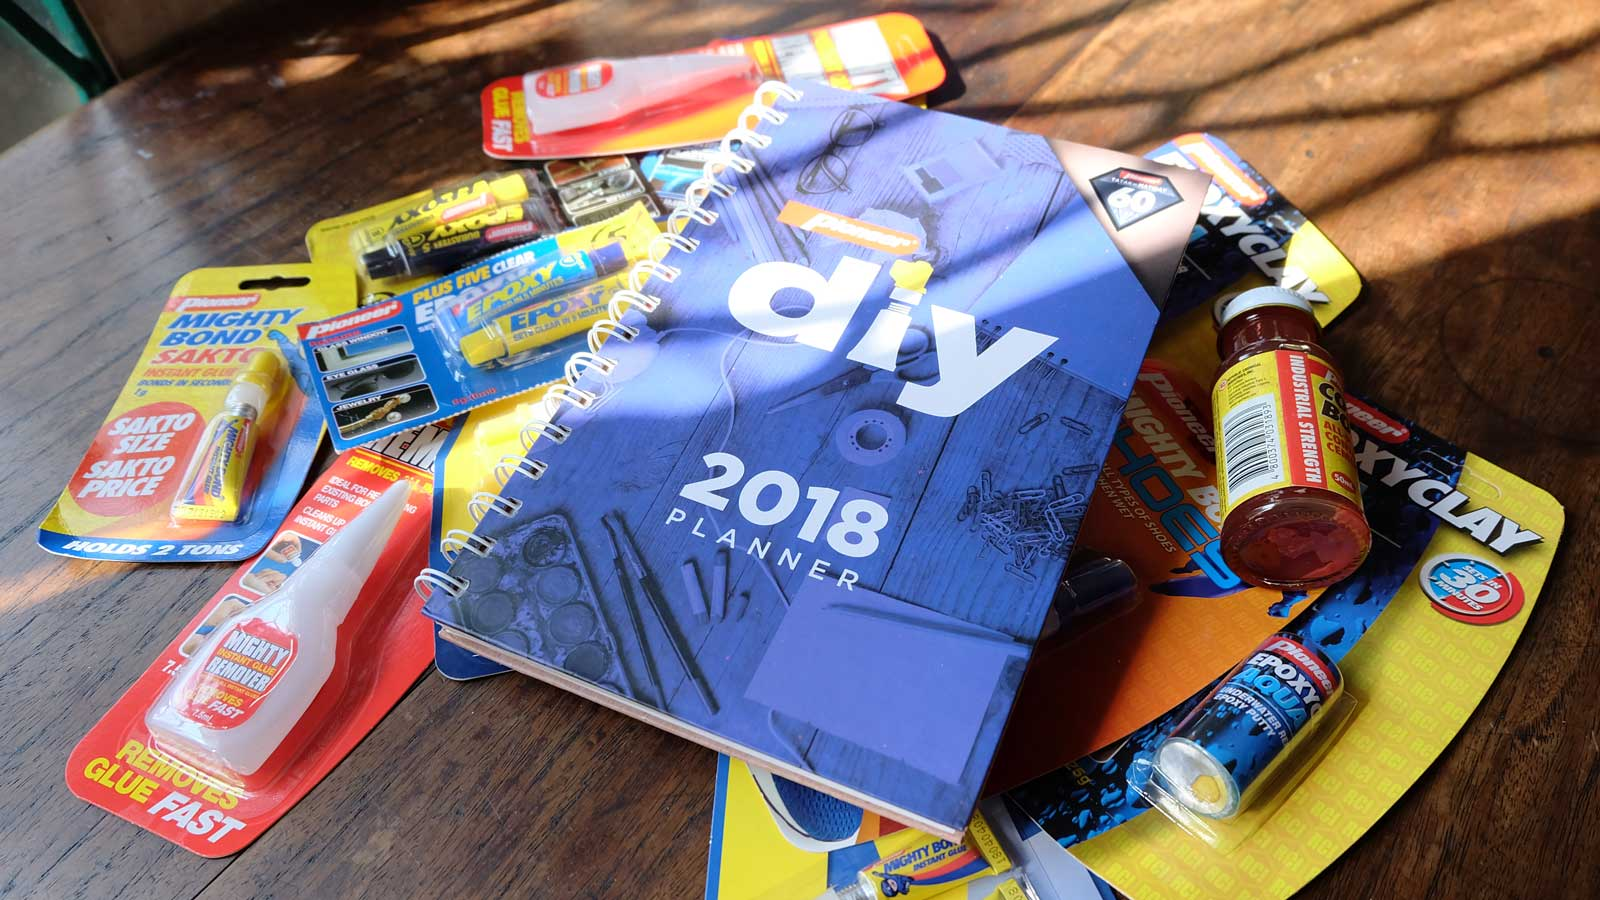 Win a Pioneer Adhesives DIY 2018 Planner